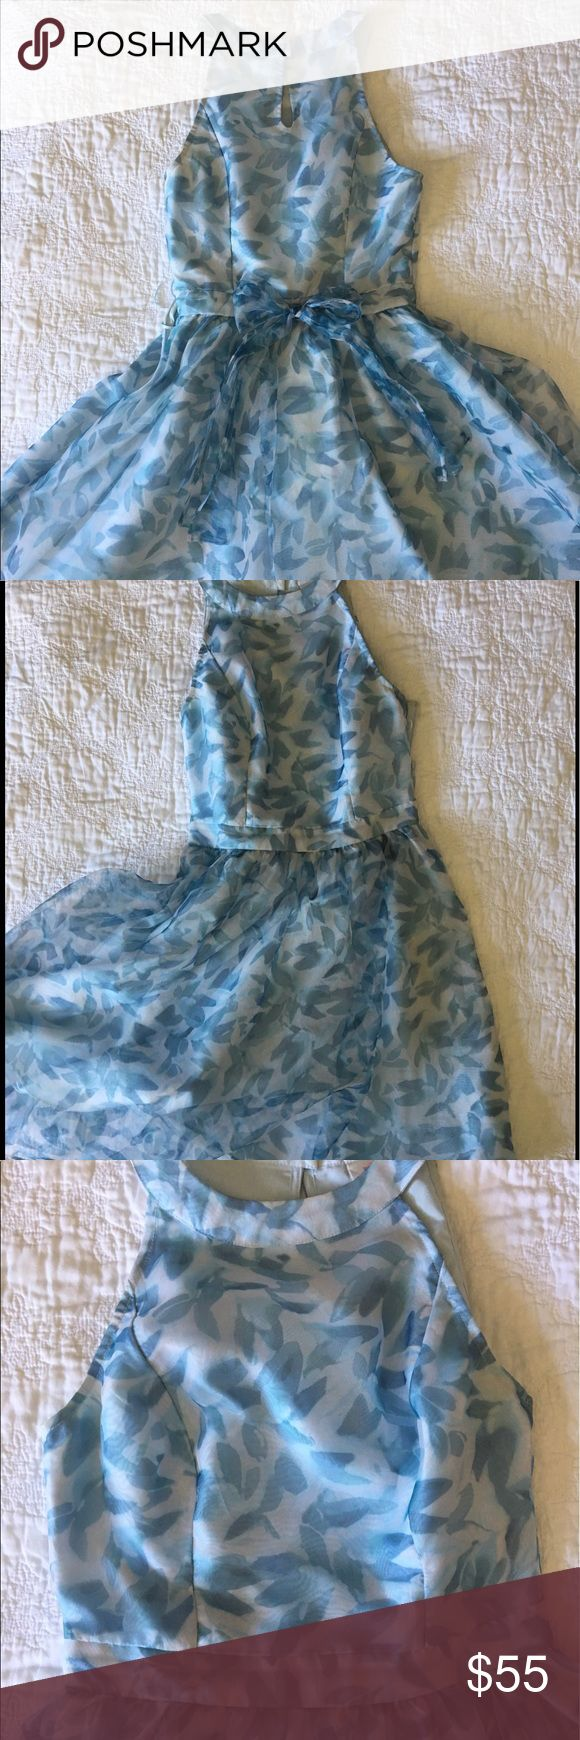 Blue and white party dress Lovely, blue and white print dress, with a high neckline and bow in the back. Bought for a wedding, never wore again. Lauren Conrad brand, from her Cinderella collection inspired by the live-action film. Perfect condition, with some foundation on inside of the front collar and sharpie on the tag. LC Lauren Conrad Dresses Mini